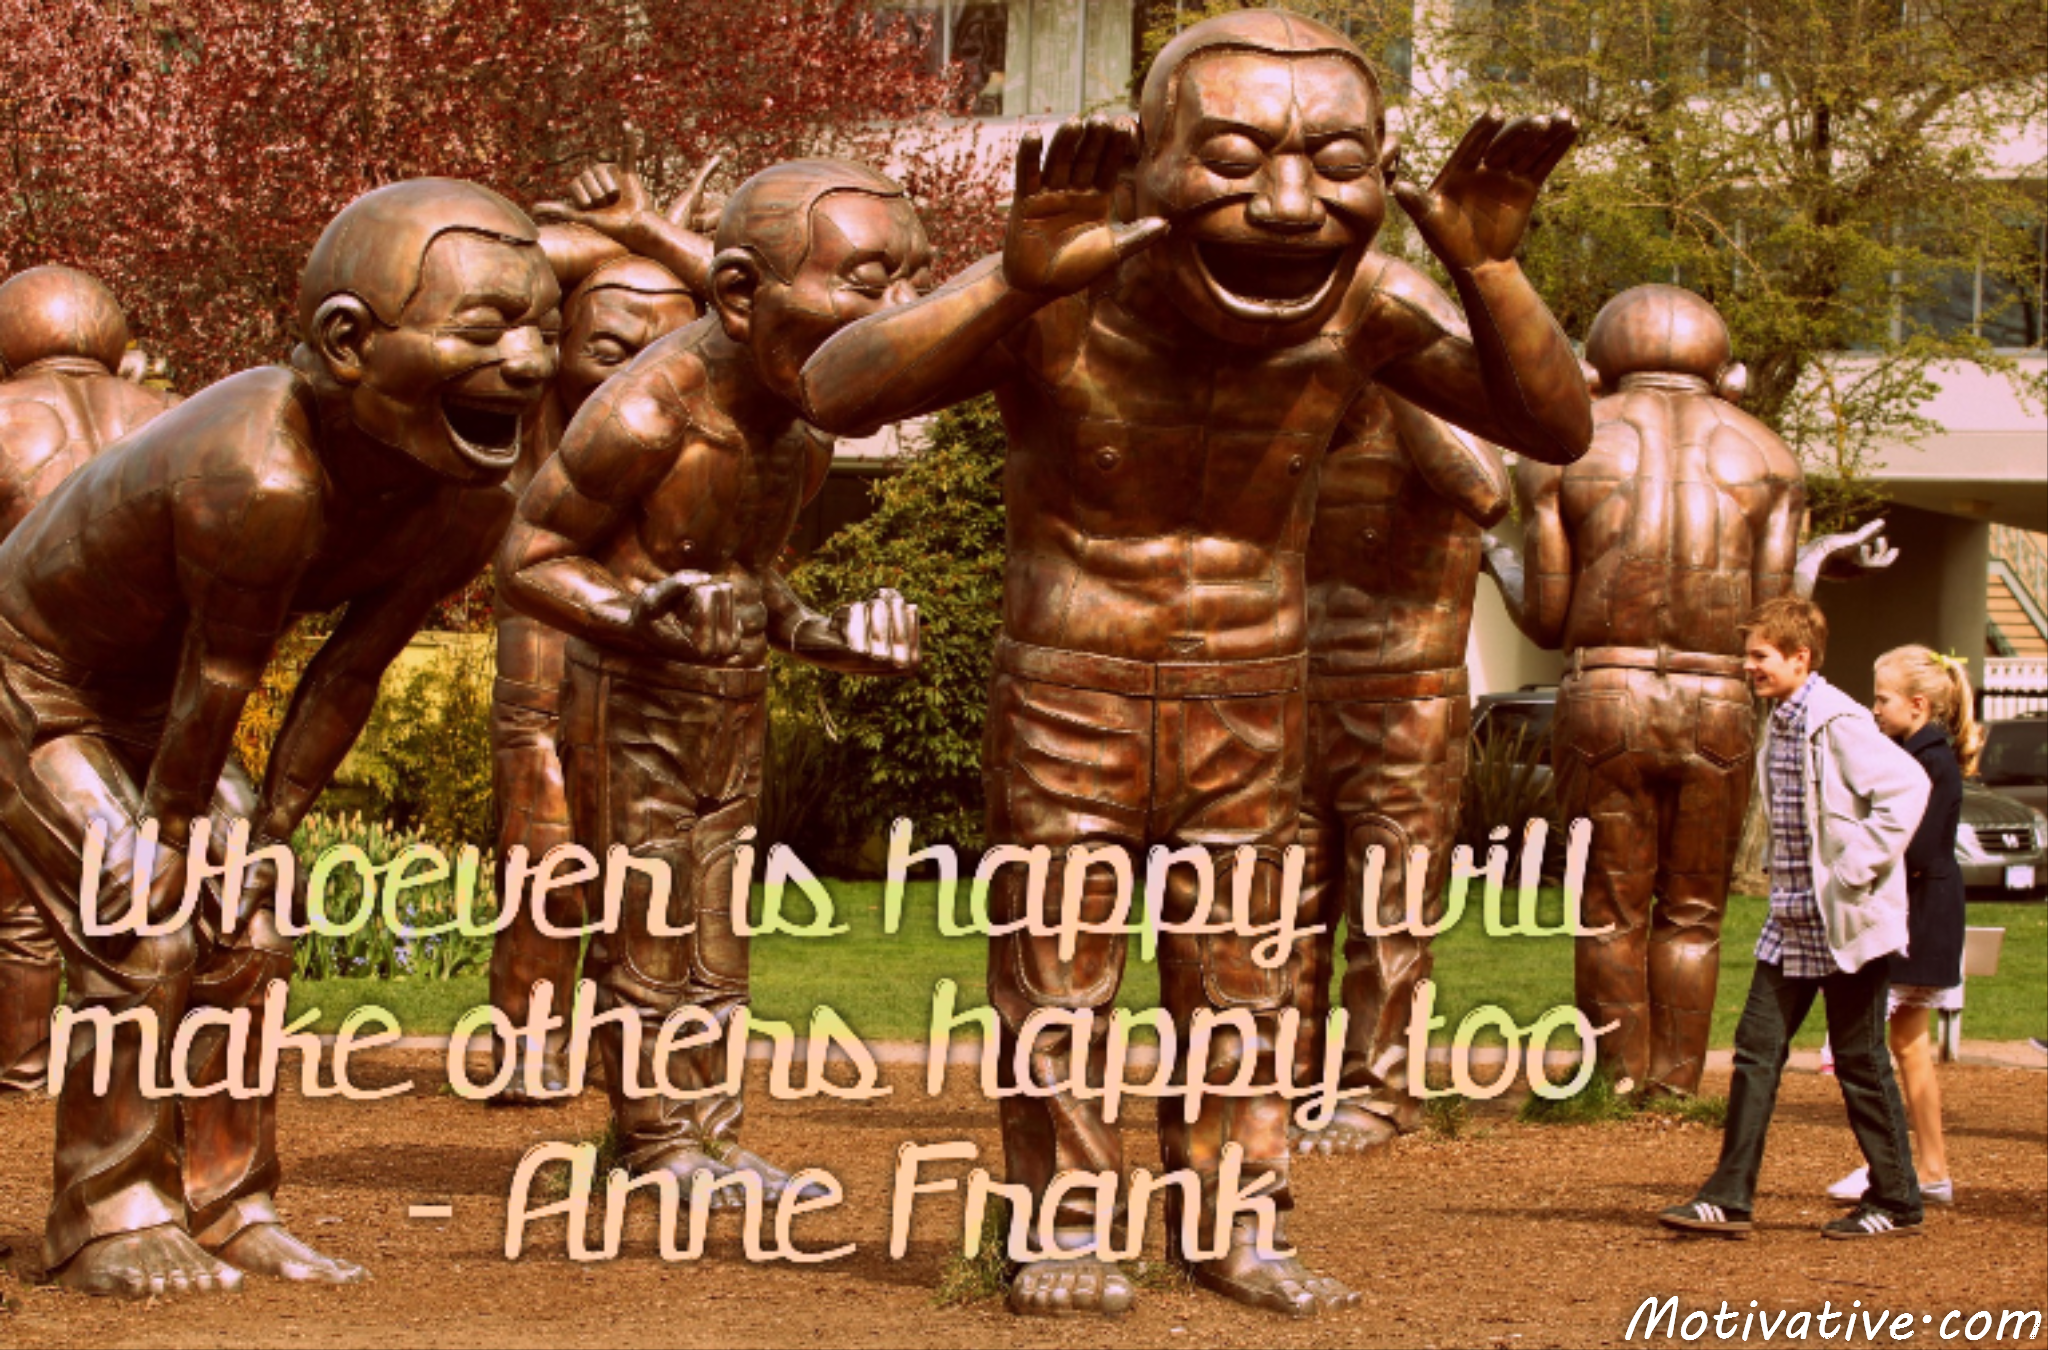 Whoever is happy will make others happy too. – Anne Frank